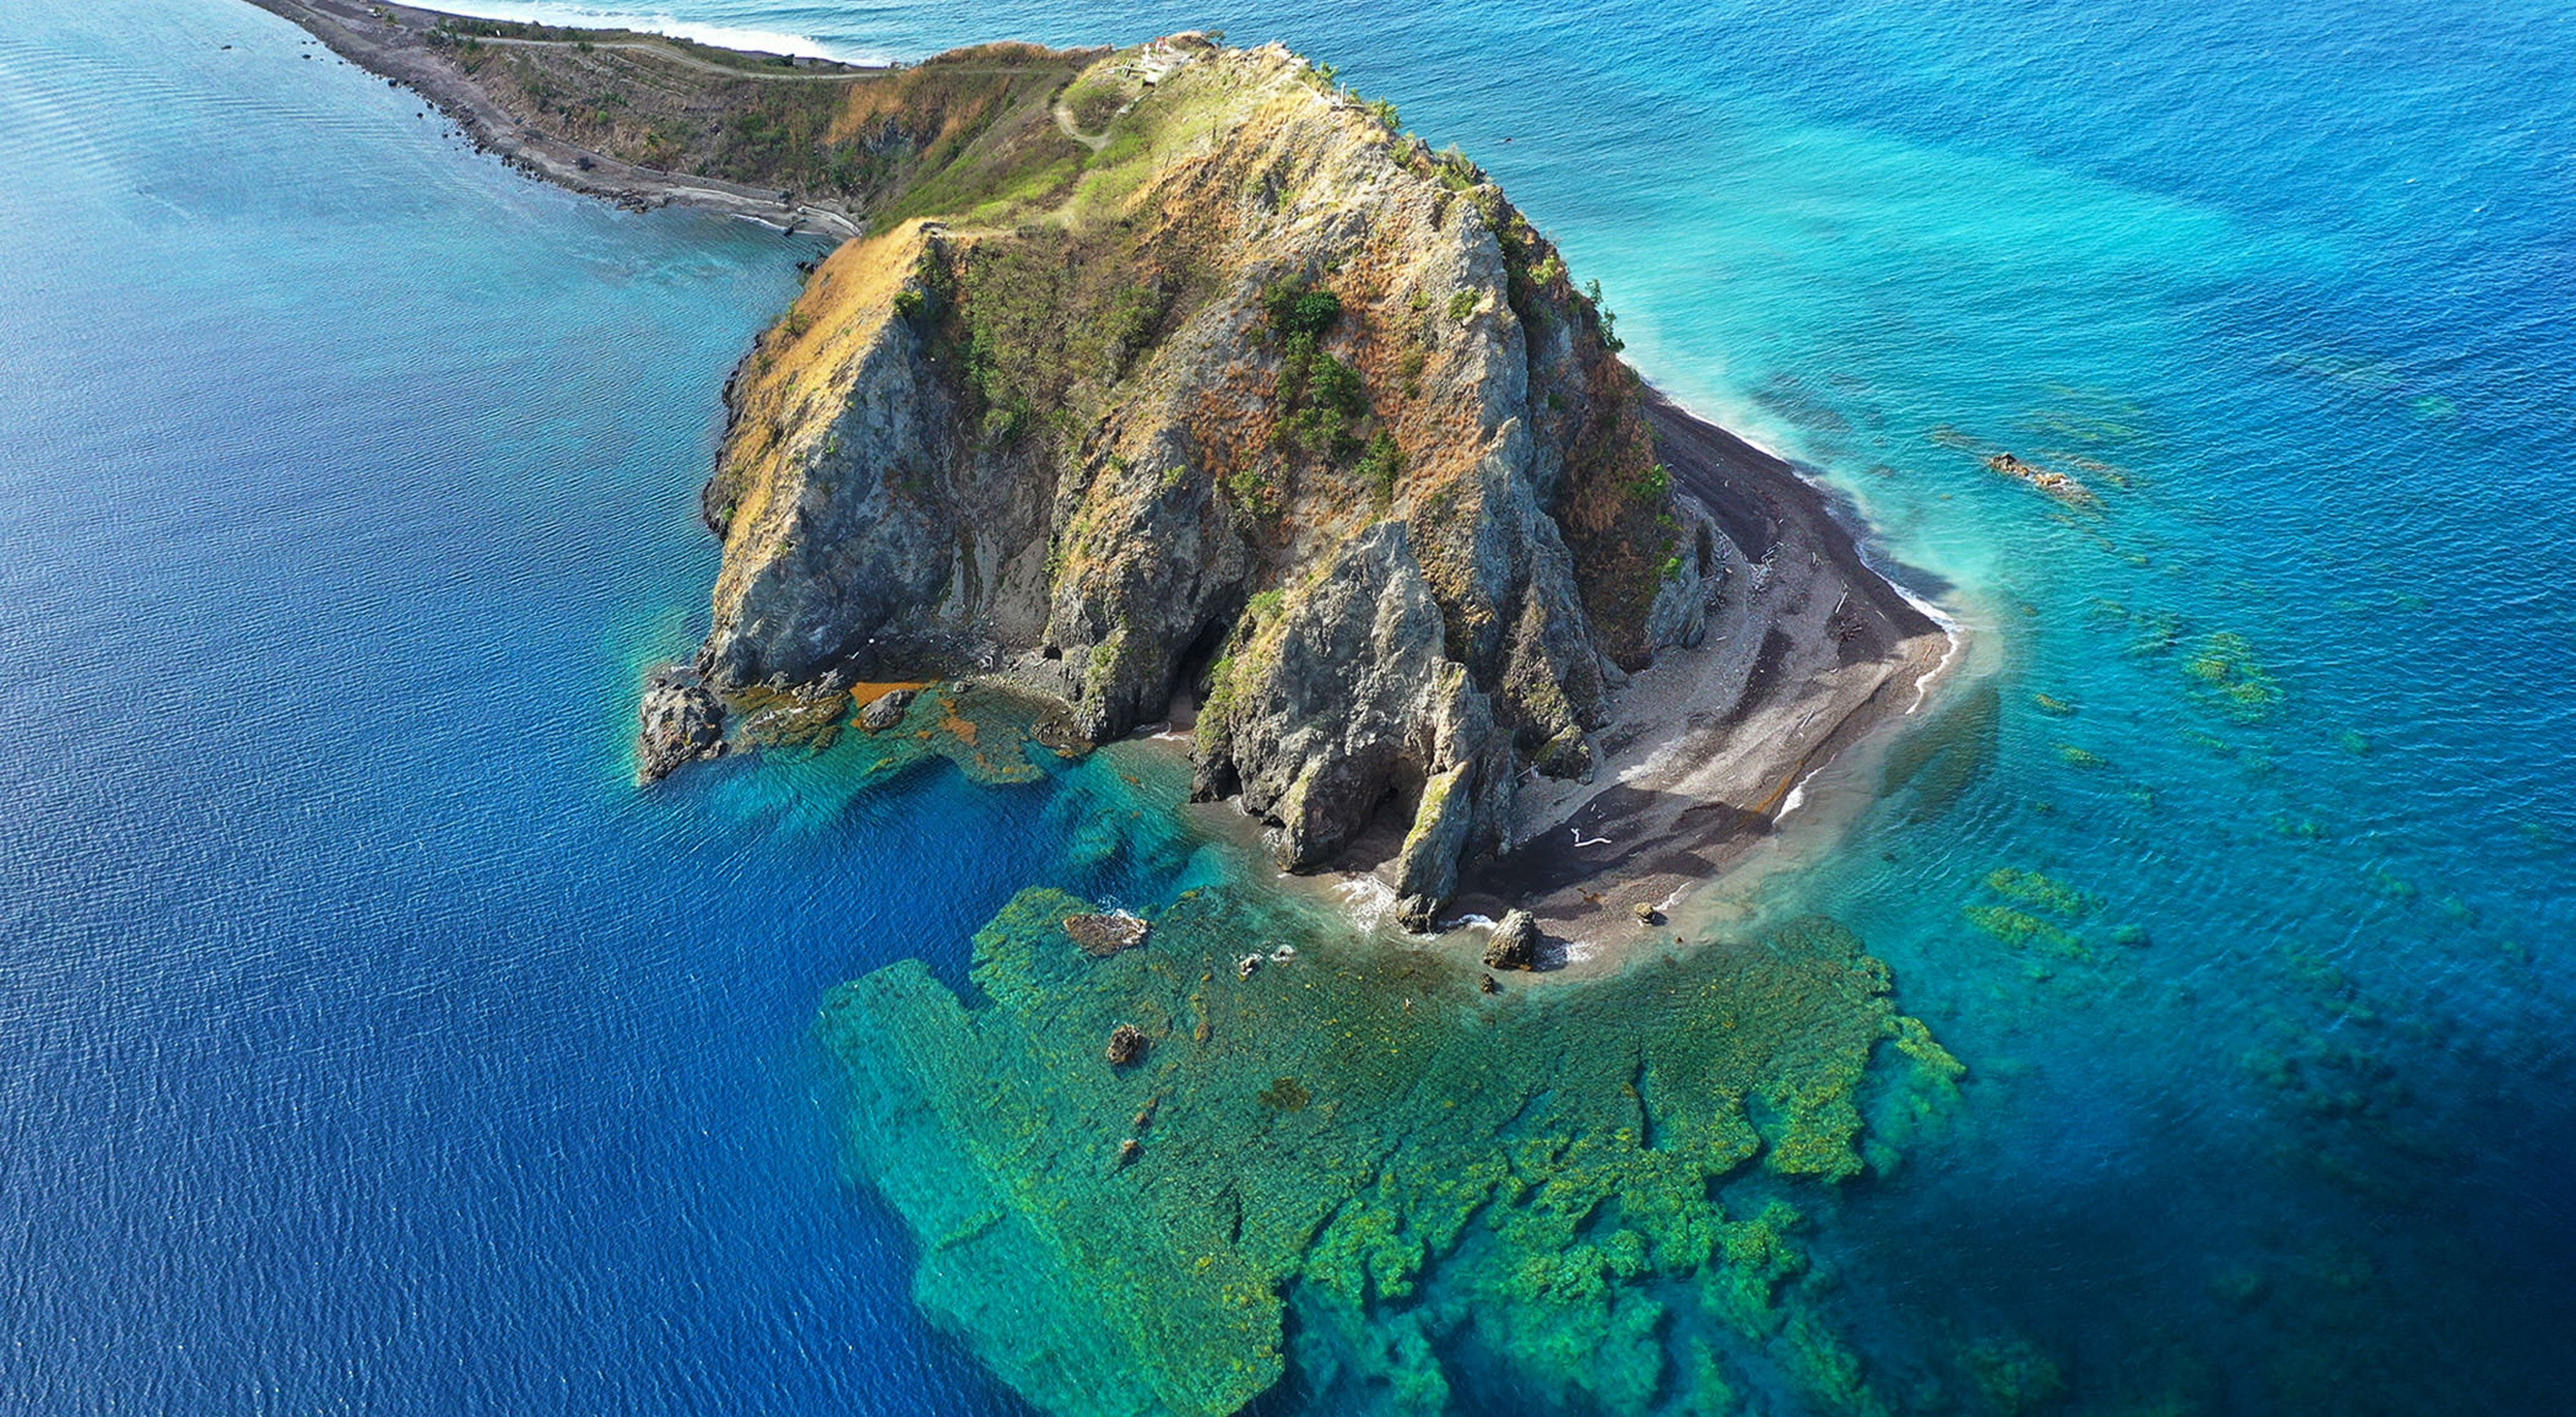 Aerial view of coastal cliffs and coral reefs below water's surface in Soufriere-Scott's Head Marine Reserve in Dominica.